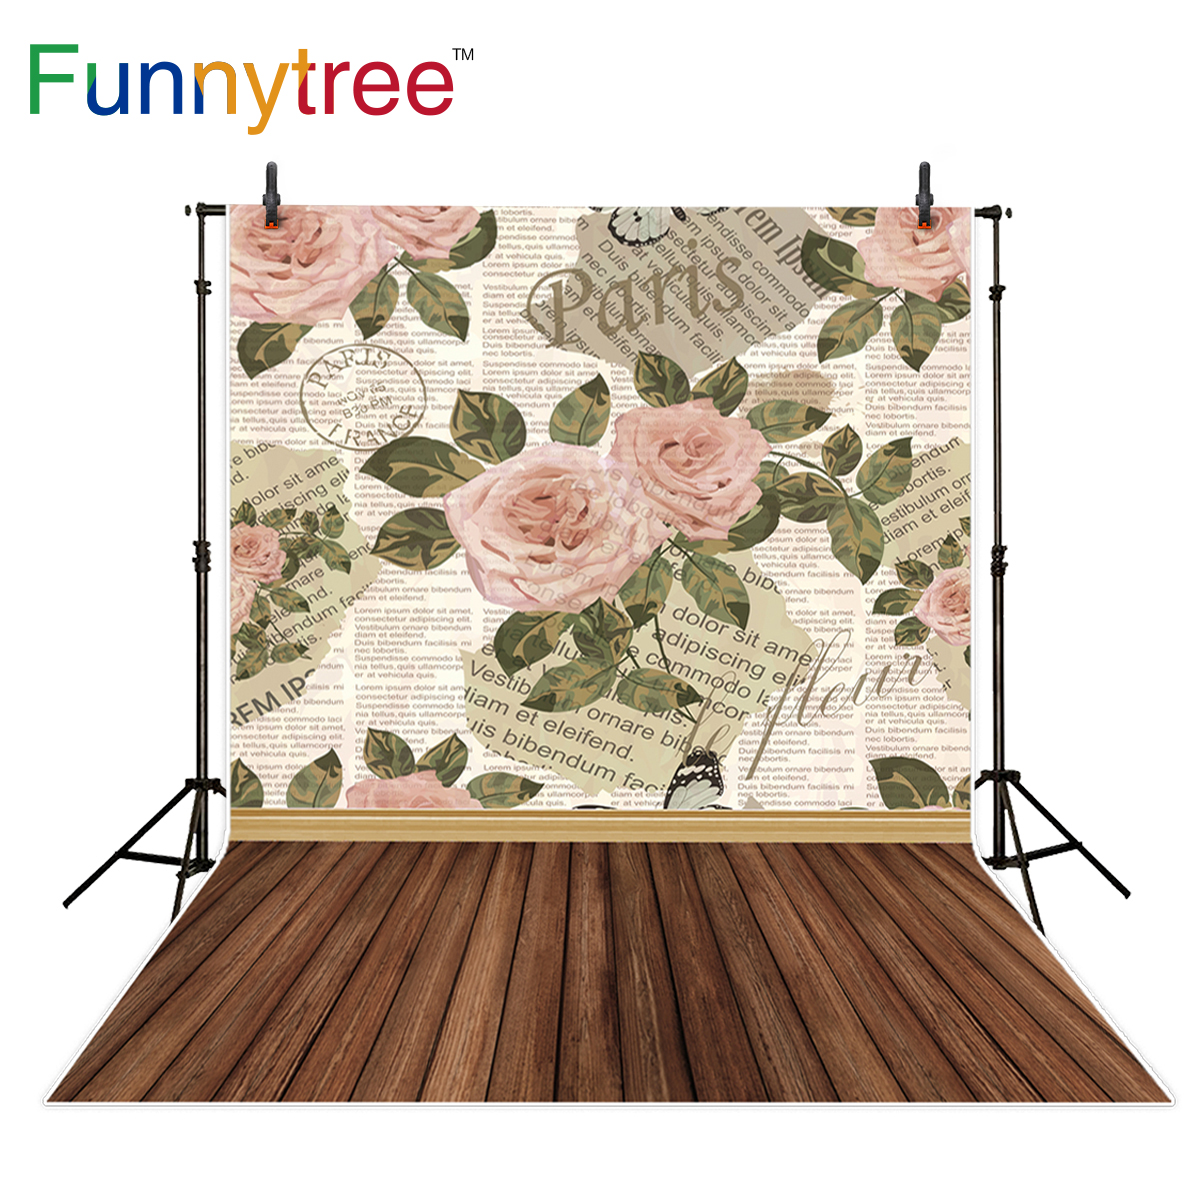 Funnytree photography backdrop pink rose old letter paris newspaper wood floor background photo studio photobooth photo prop